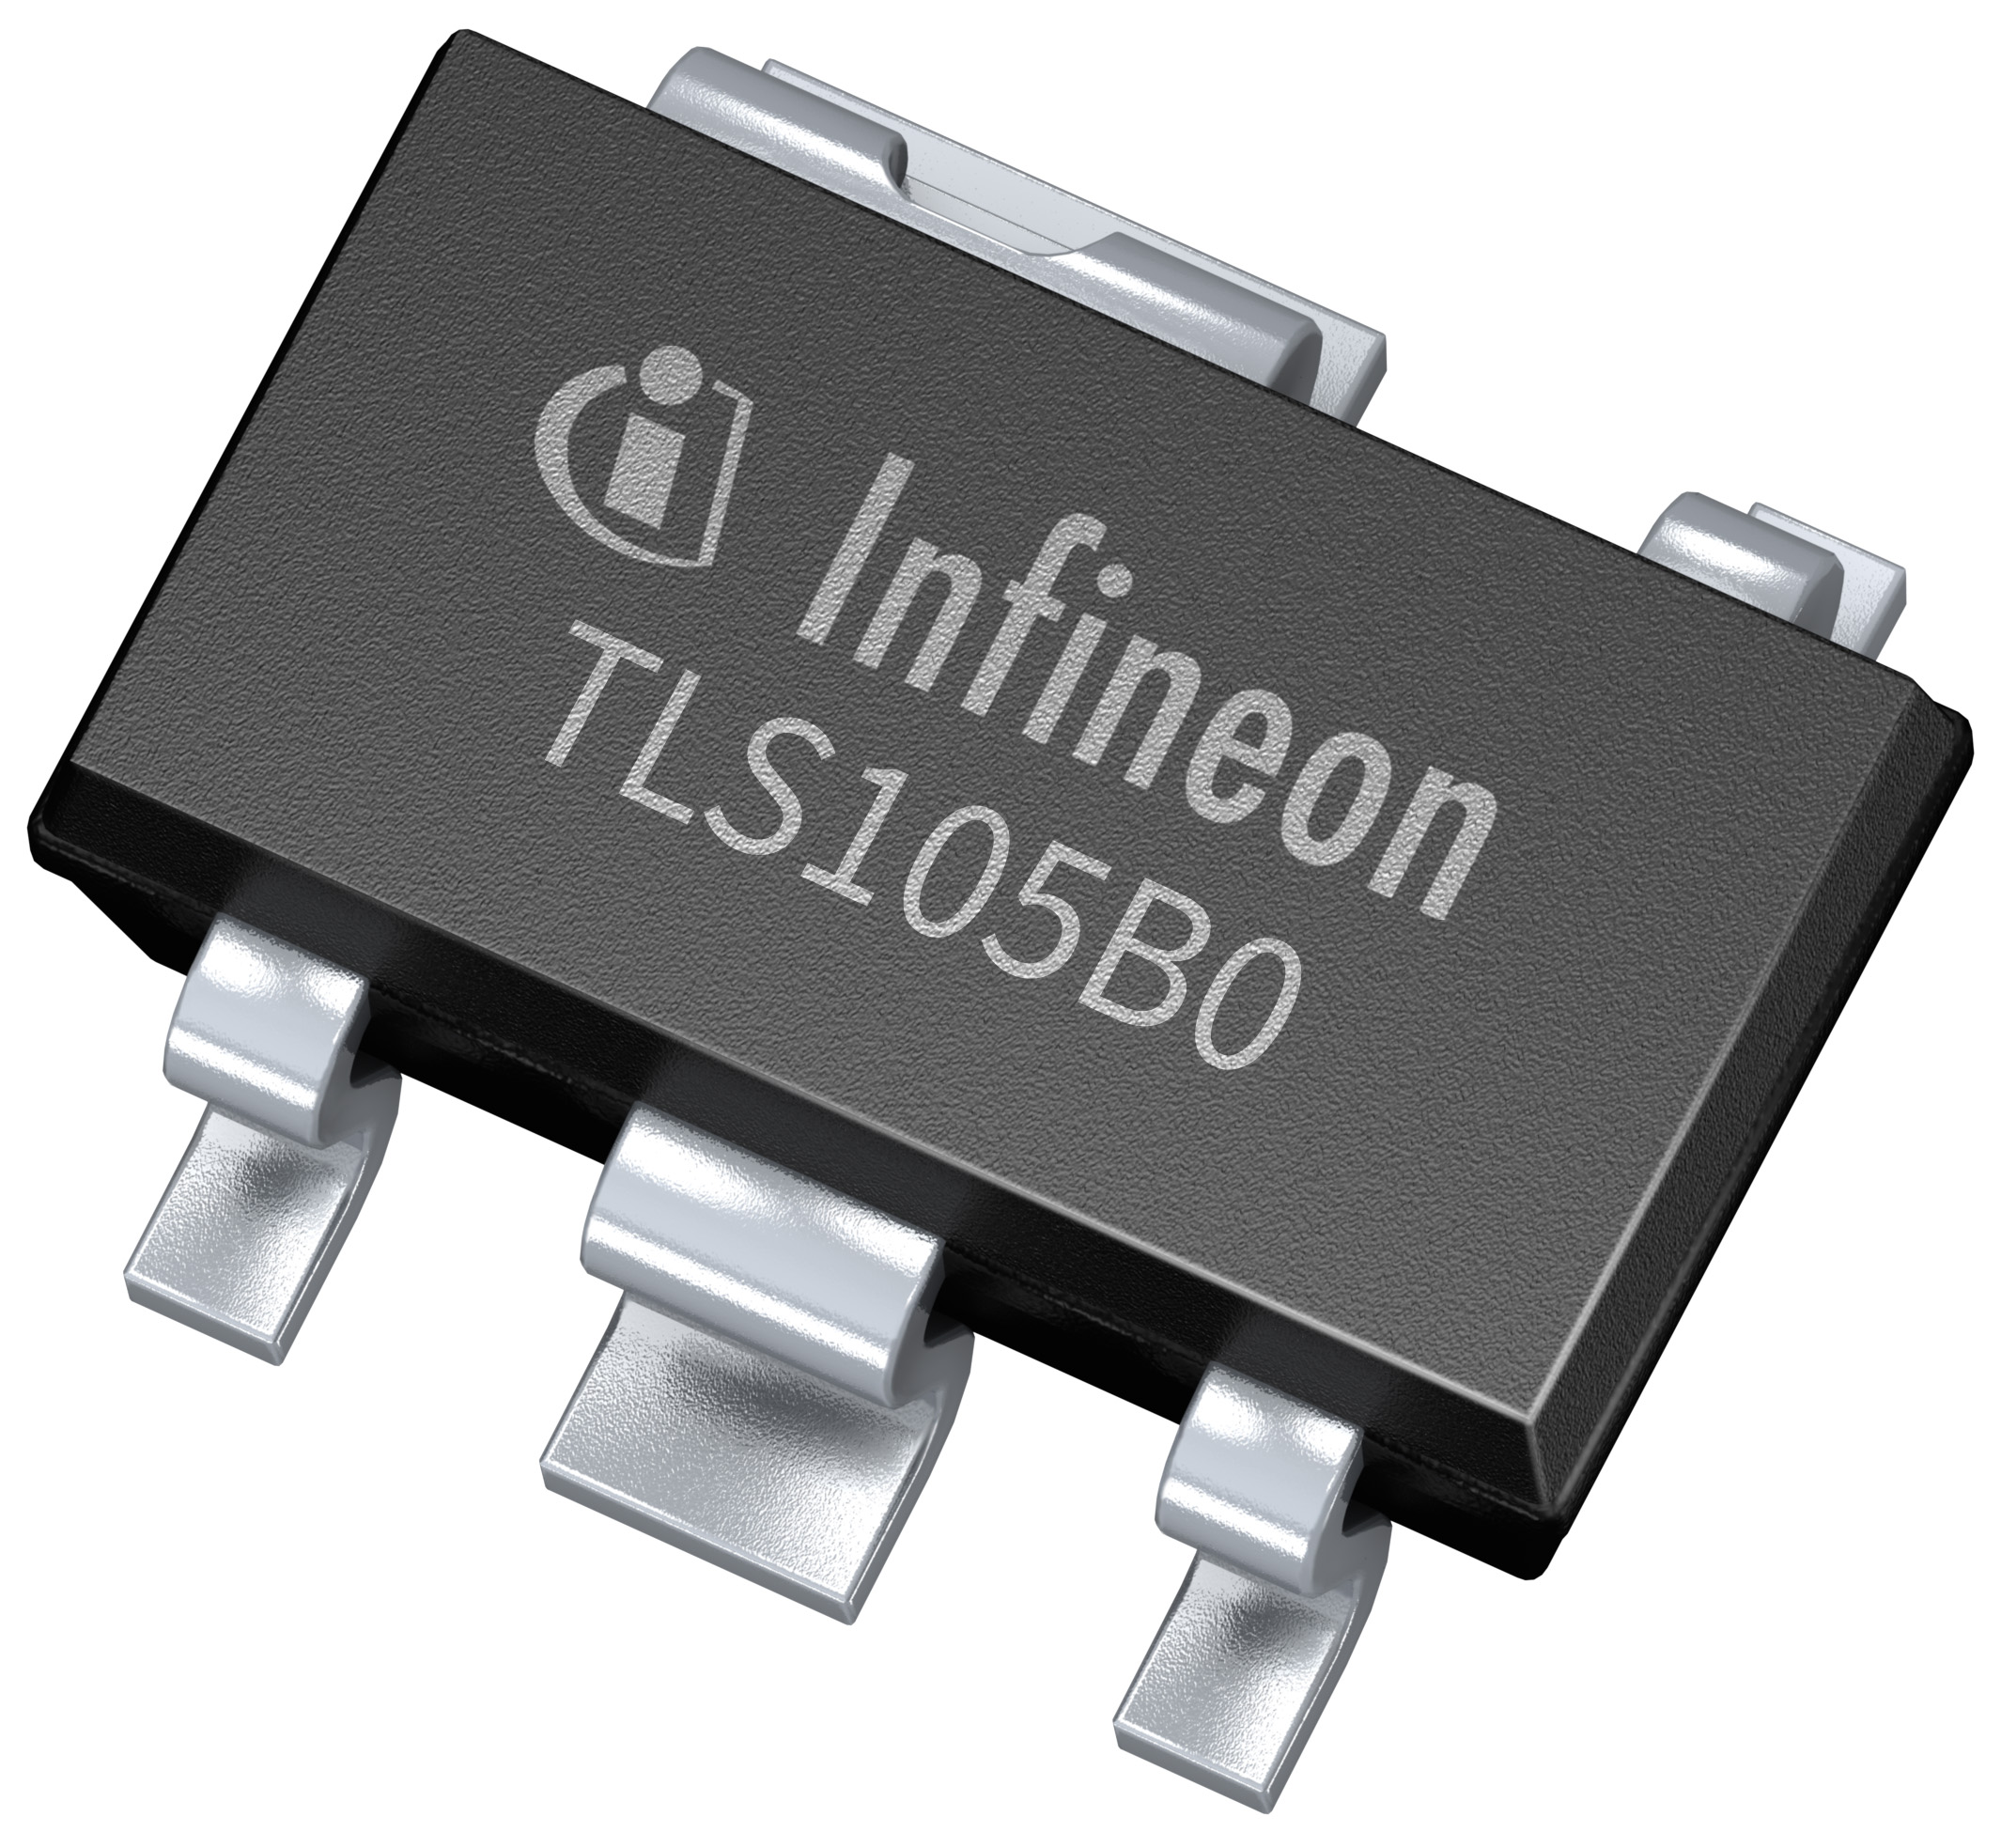 Tle75008 Esd Infineon Technologies Solid State Relay Tls105b0mb Linear Voltage Regulators For Automotive Applications Optireg